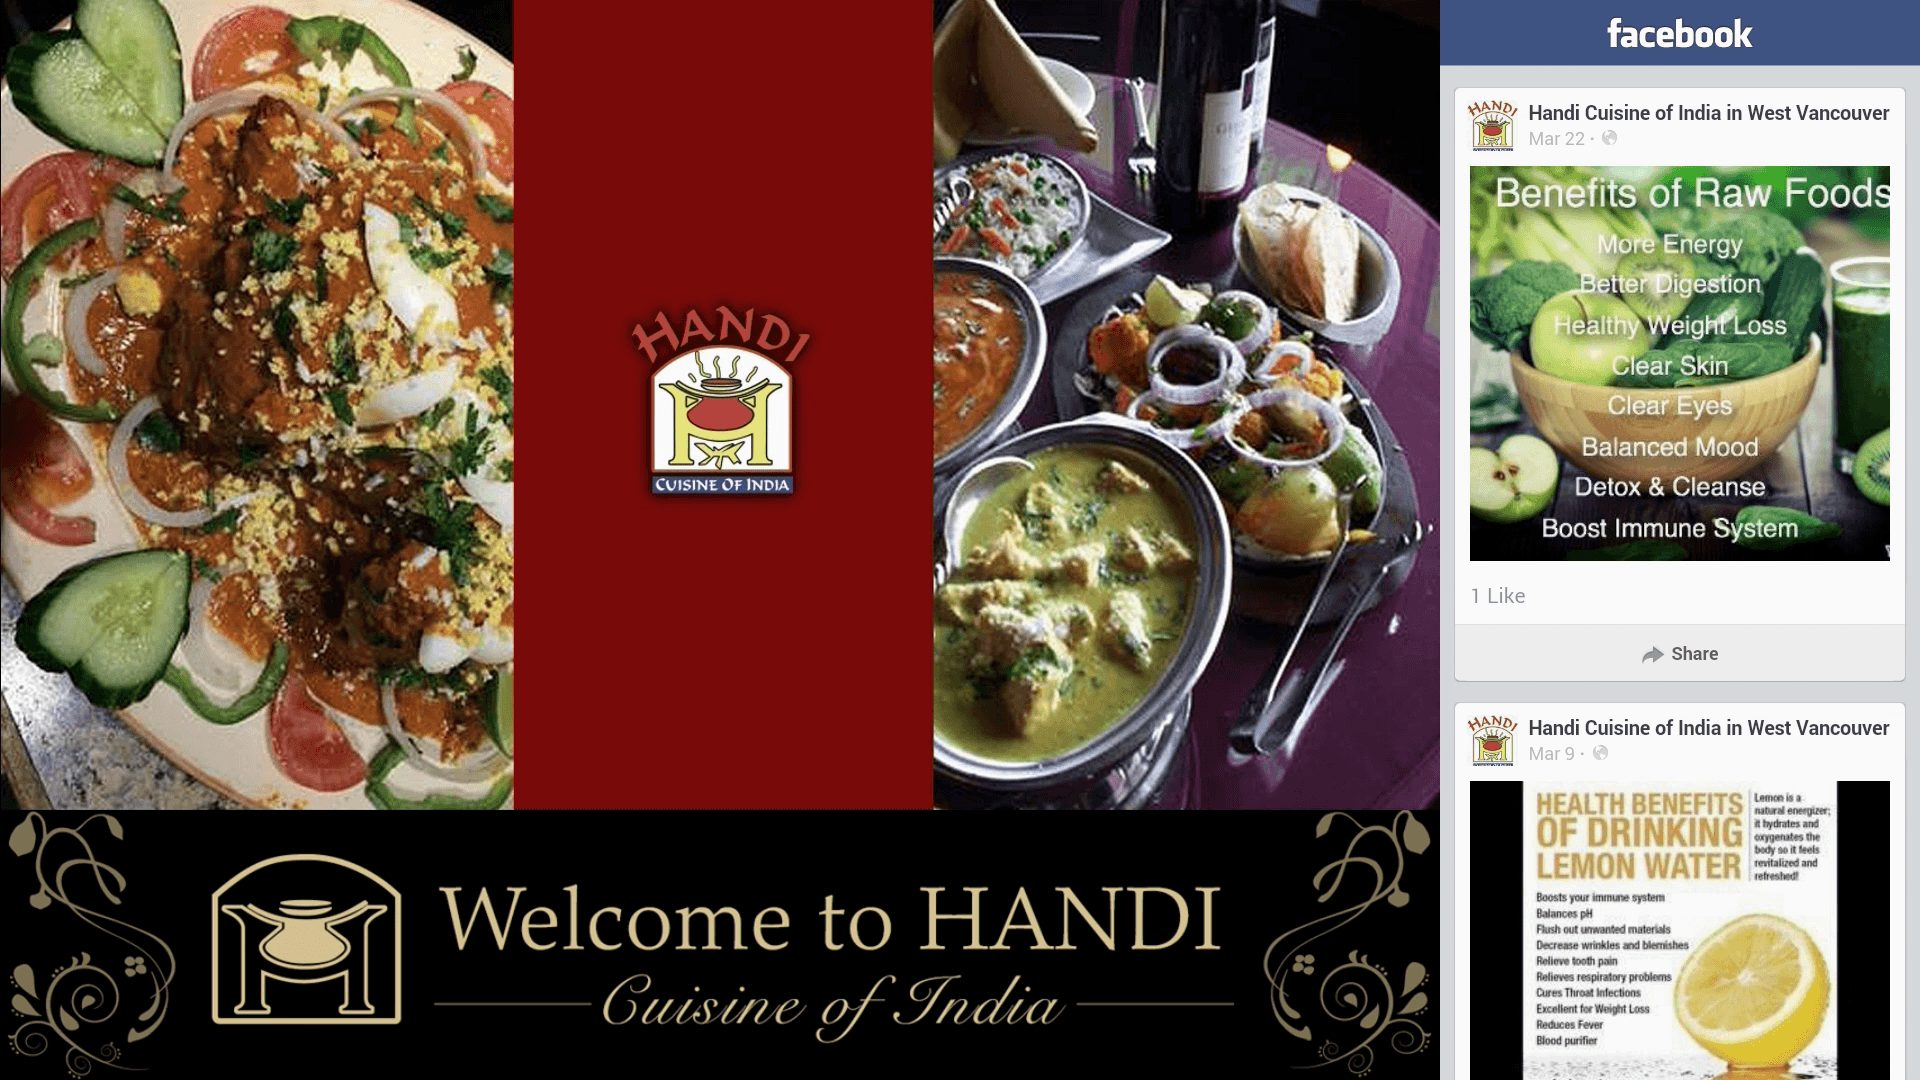 a digital signage for Indian cuisine, with branding and facebook feed